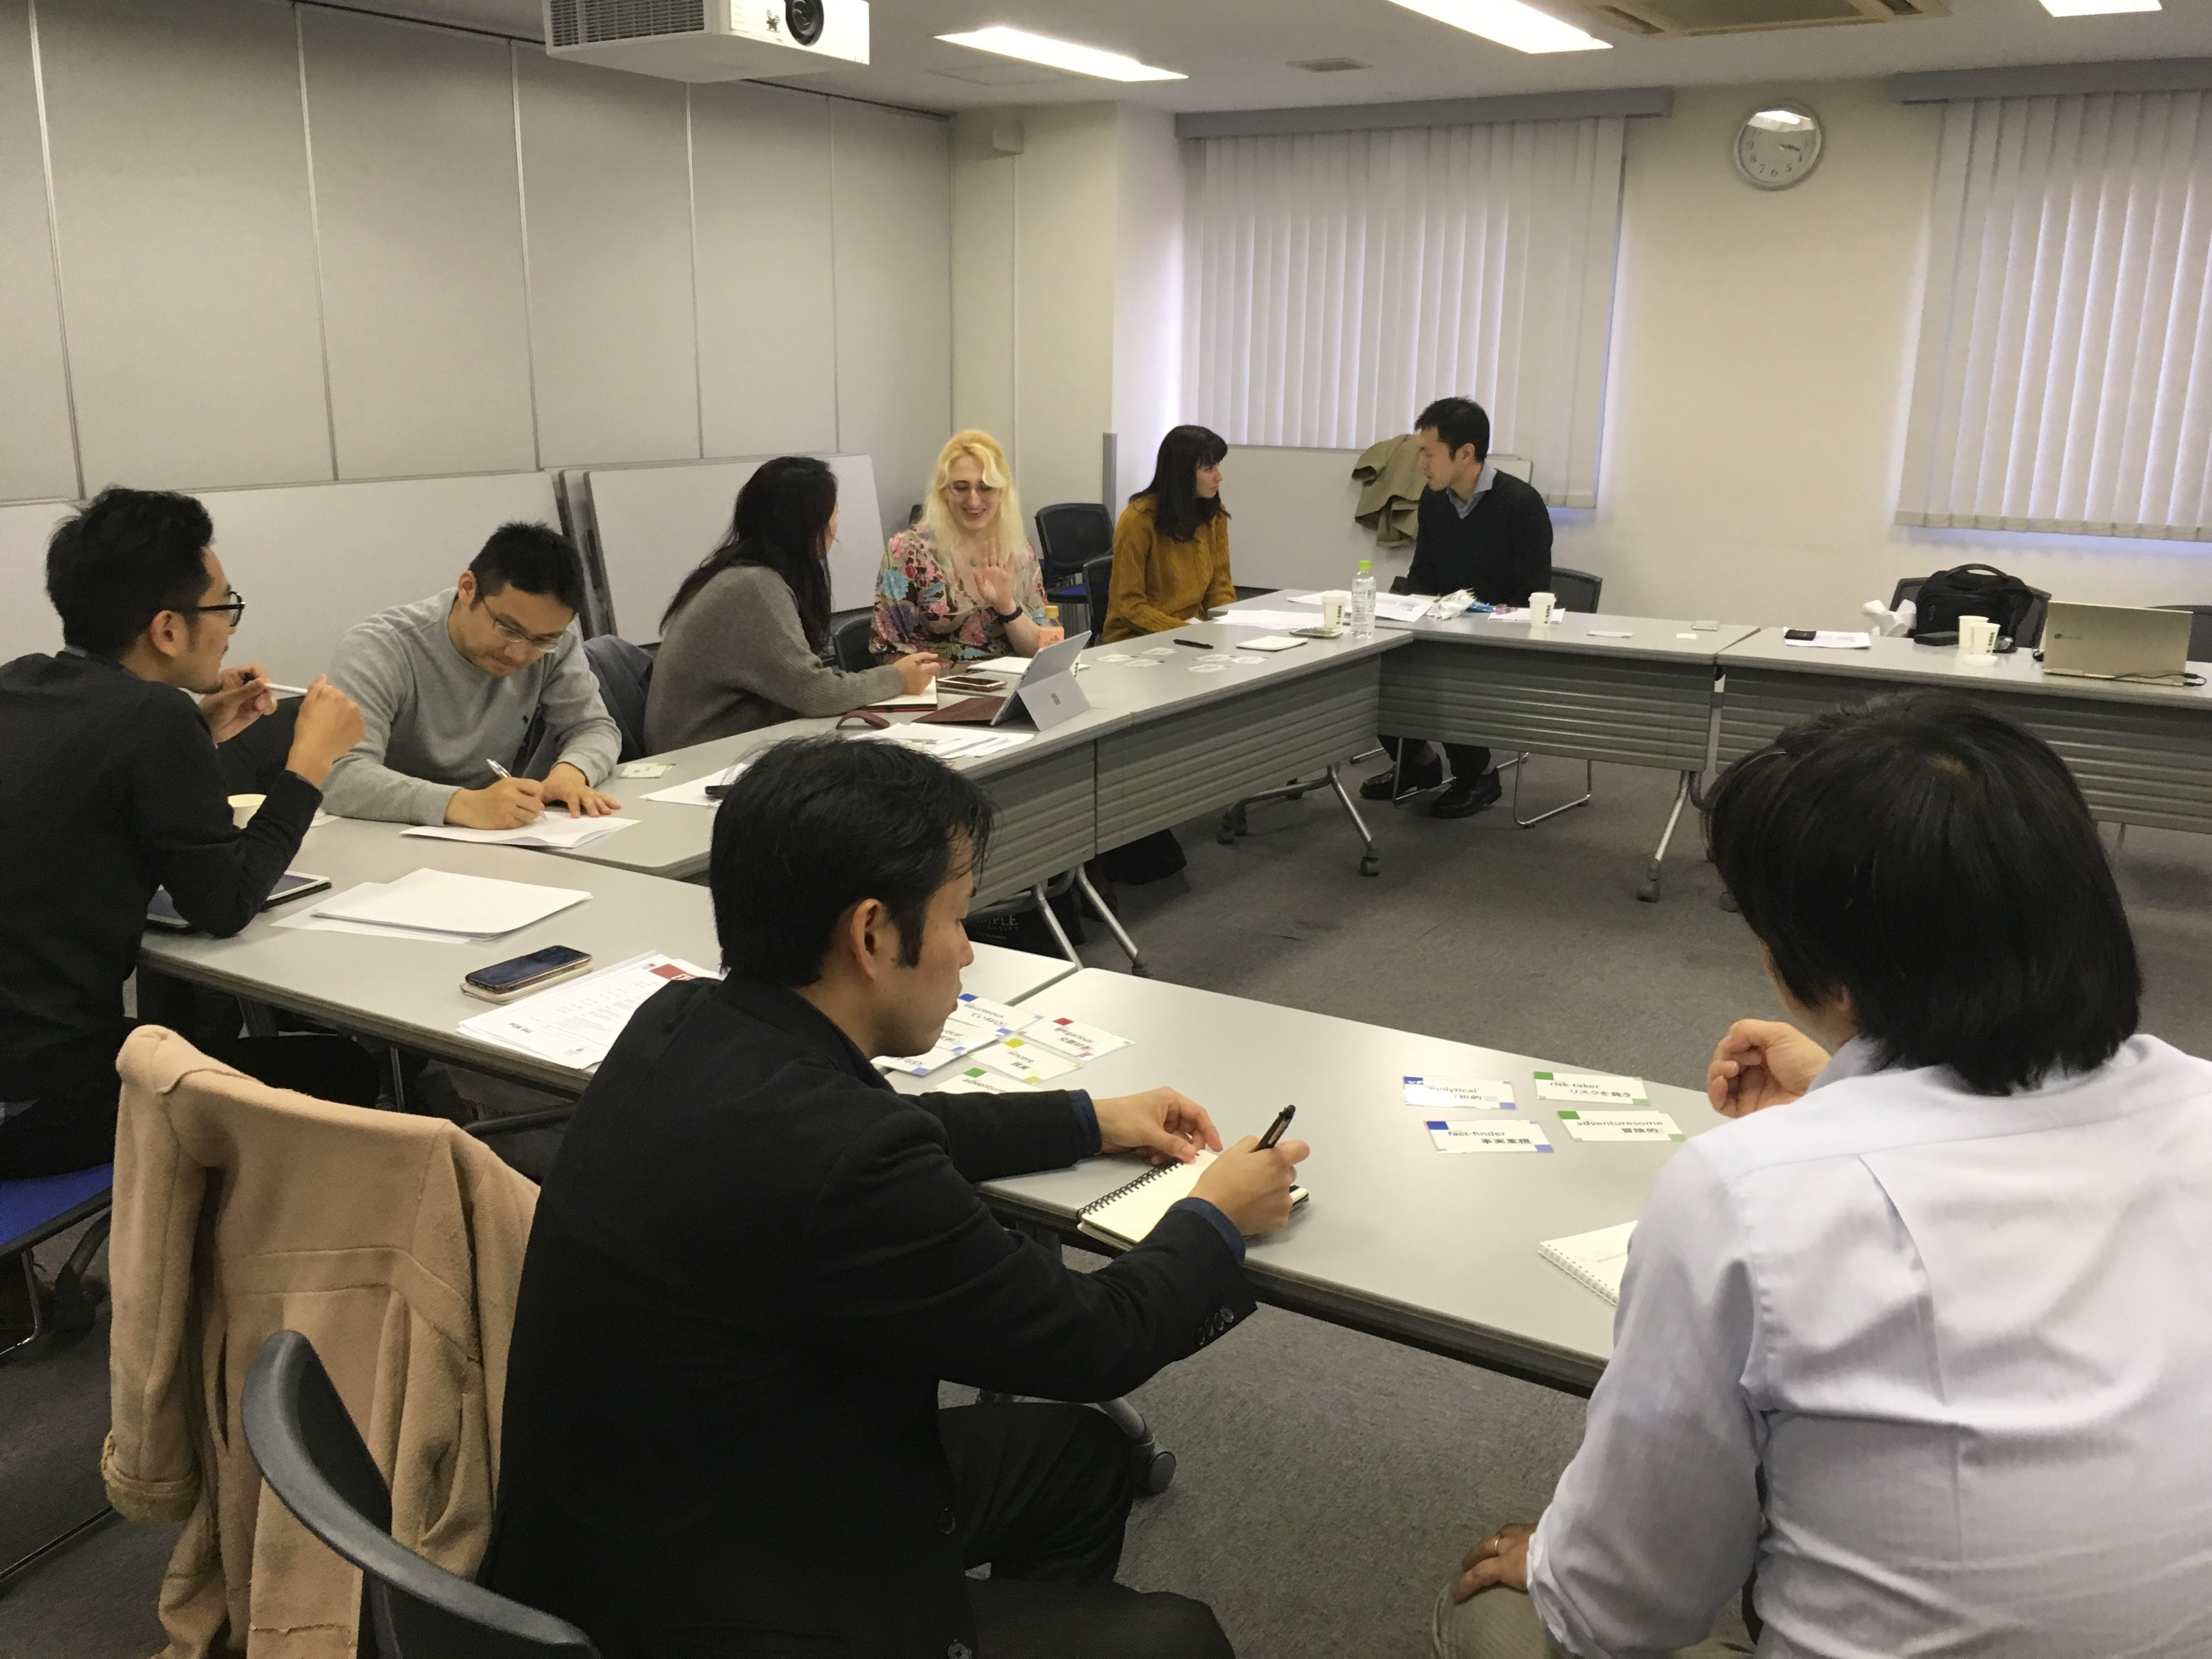 Temple University Japan students sit at tables in a classroom for orientation.